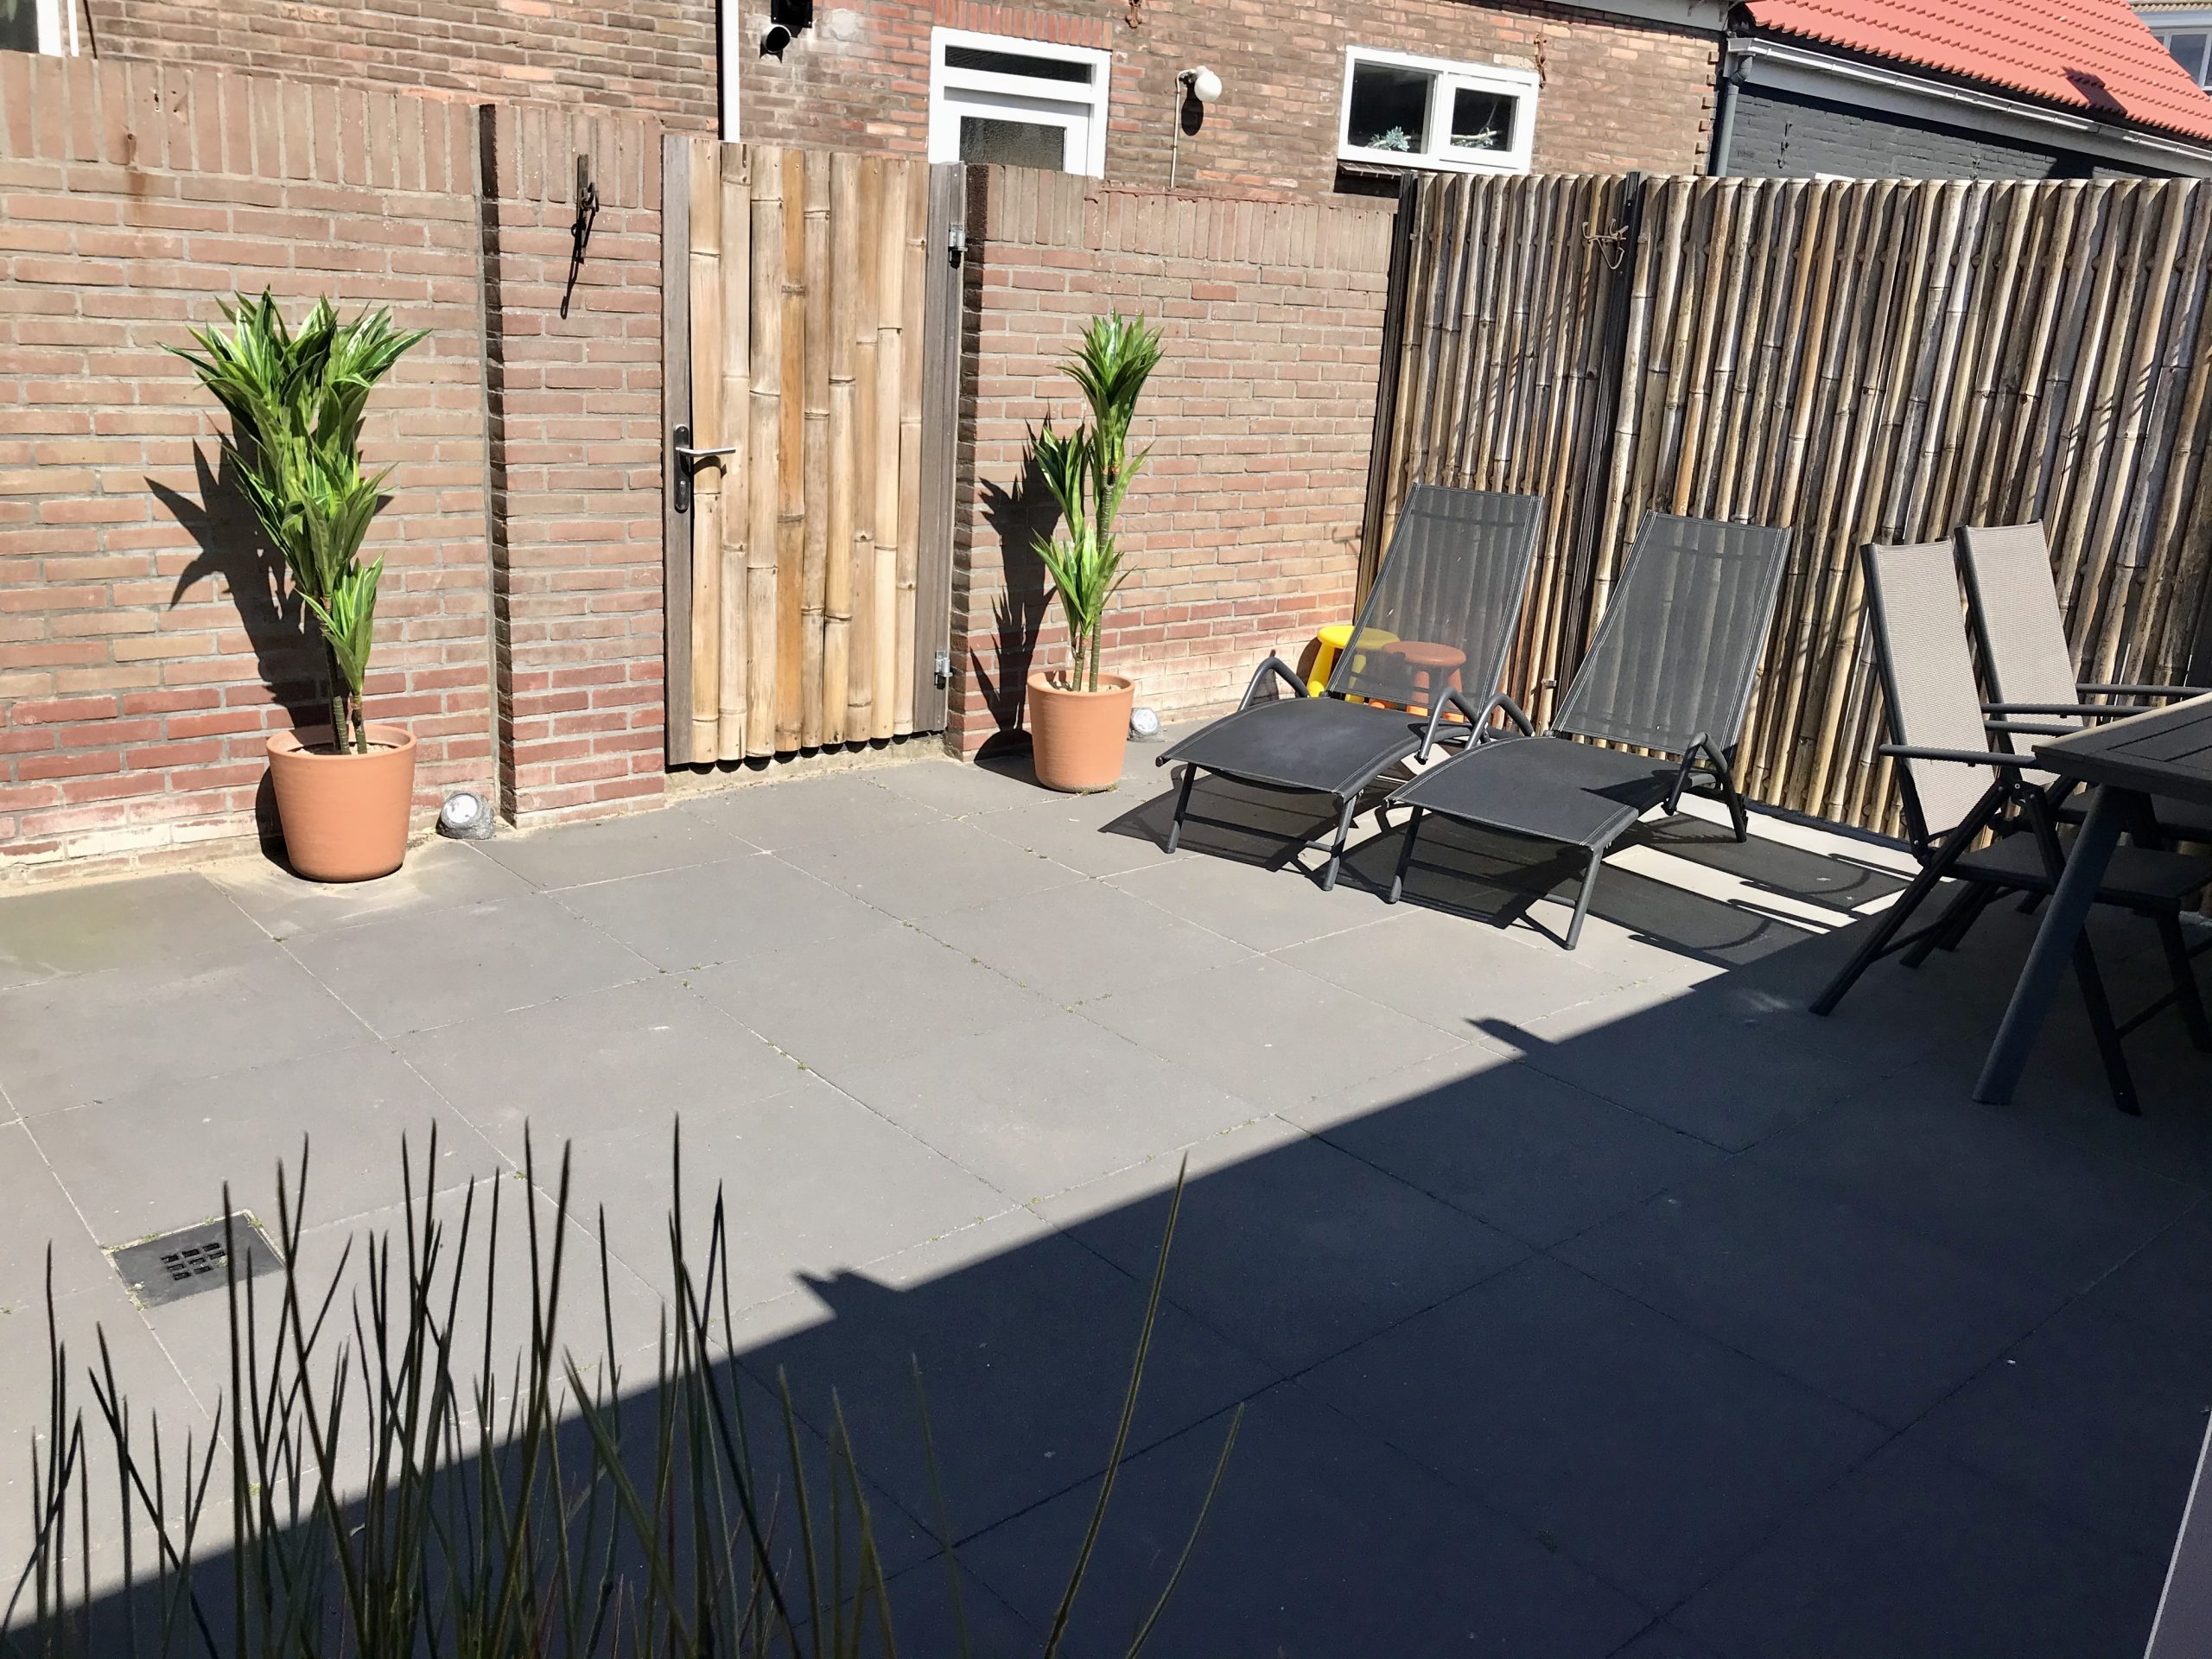 tuin 6 pers huis 2